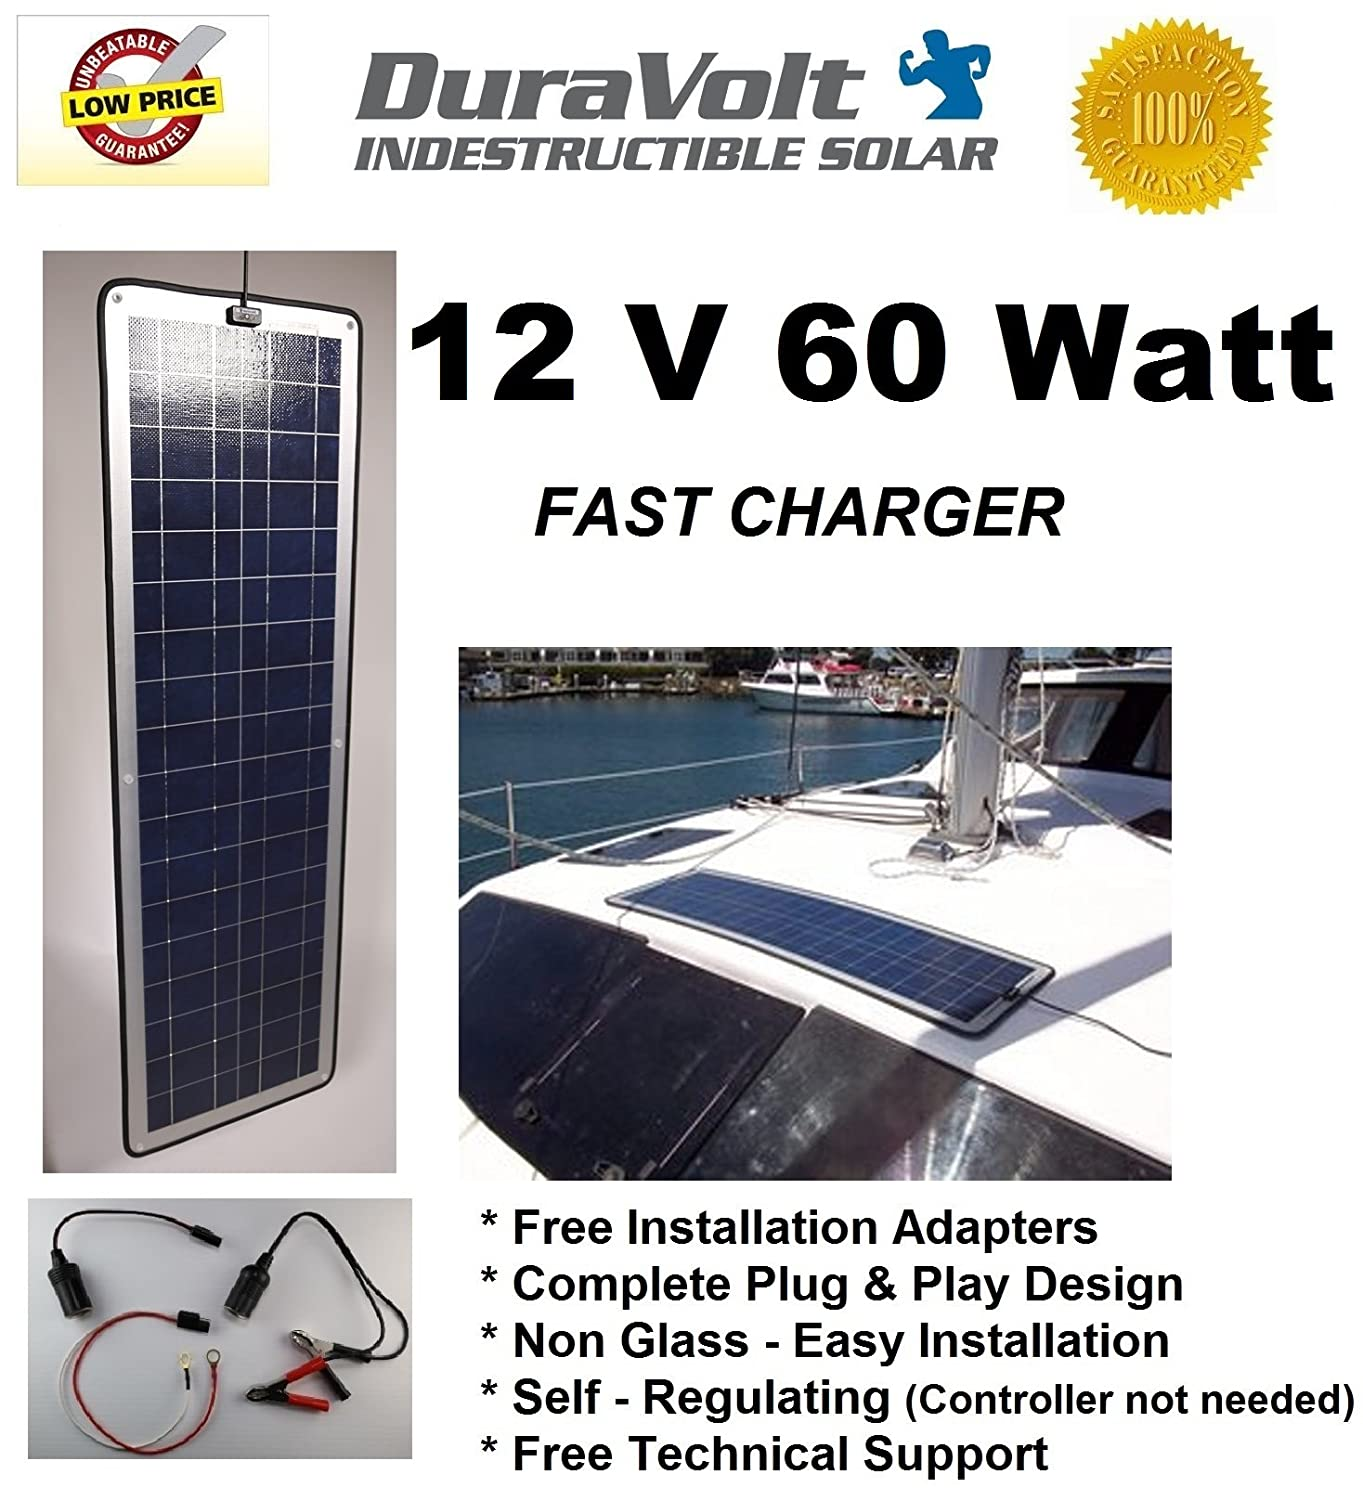 !! Solar Charger SALE for Dad's Day !! - 12 Volt solar charger - DuraVolt - 60.0 Watt 12V Solar Charger - Plug & Play - for Trolling Motors, Boats, Rv, Marine - Semi Flexible size: 49.6 100w 12v monocrystalline solar panel for 12v battery rv boat car home solar power